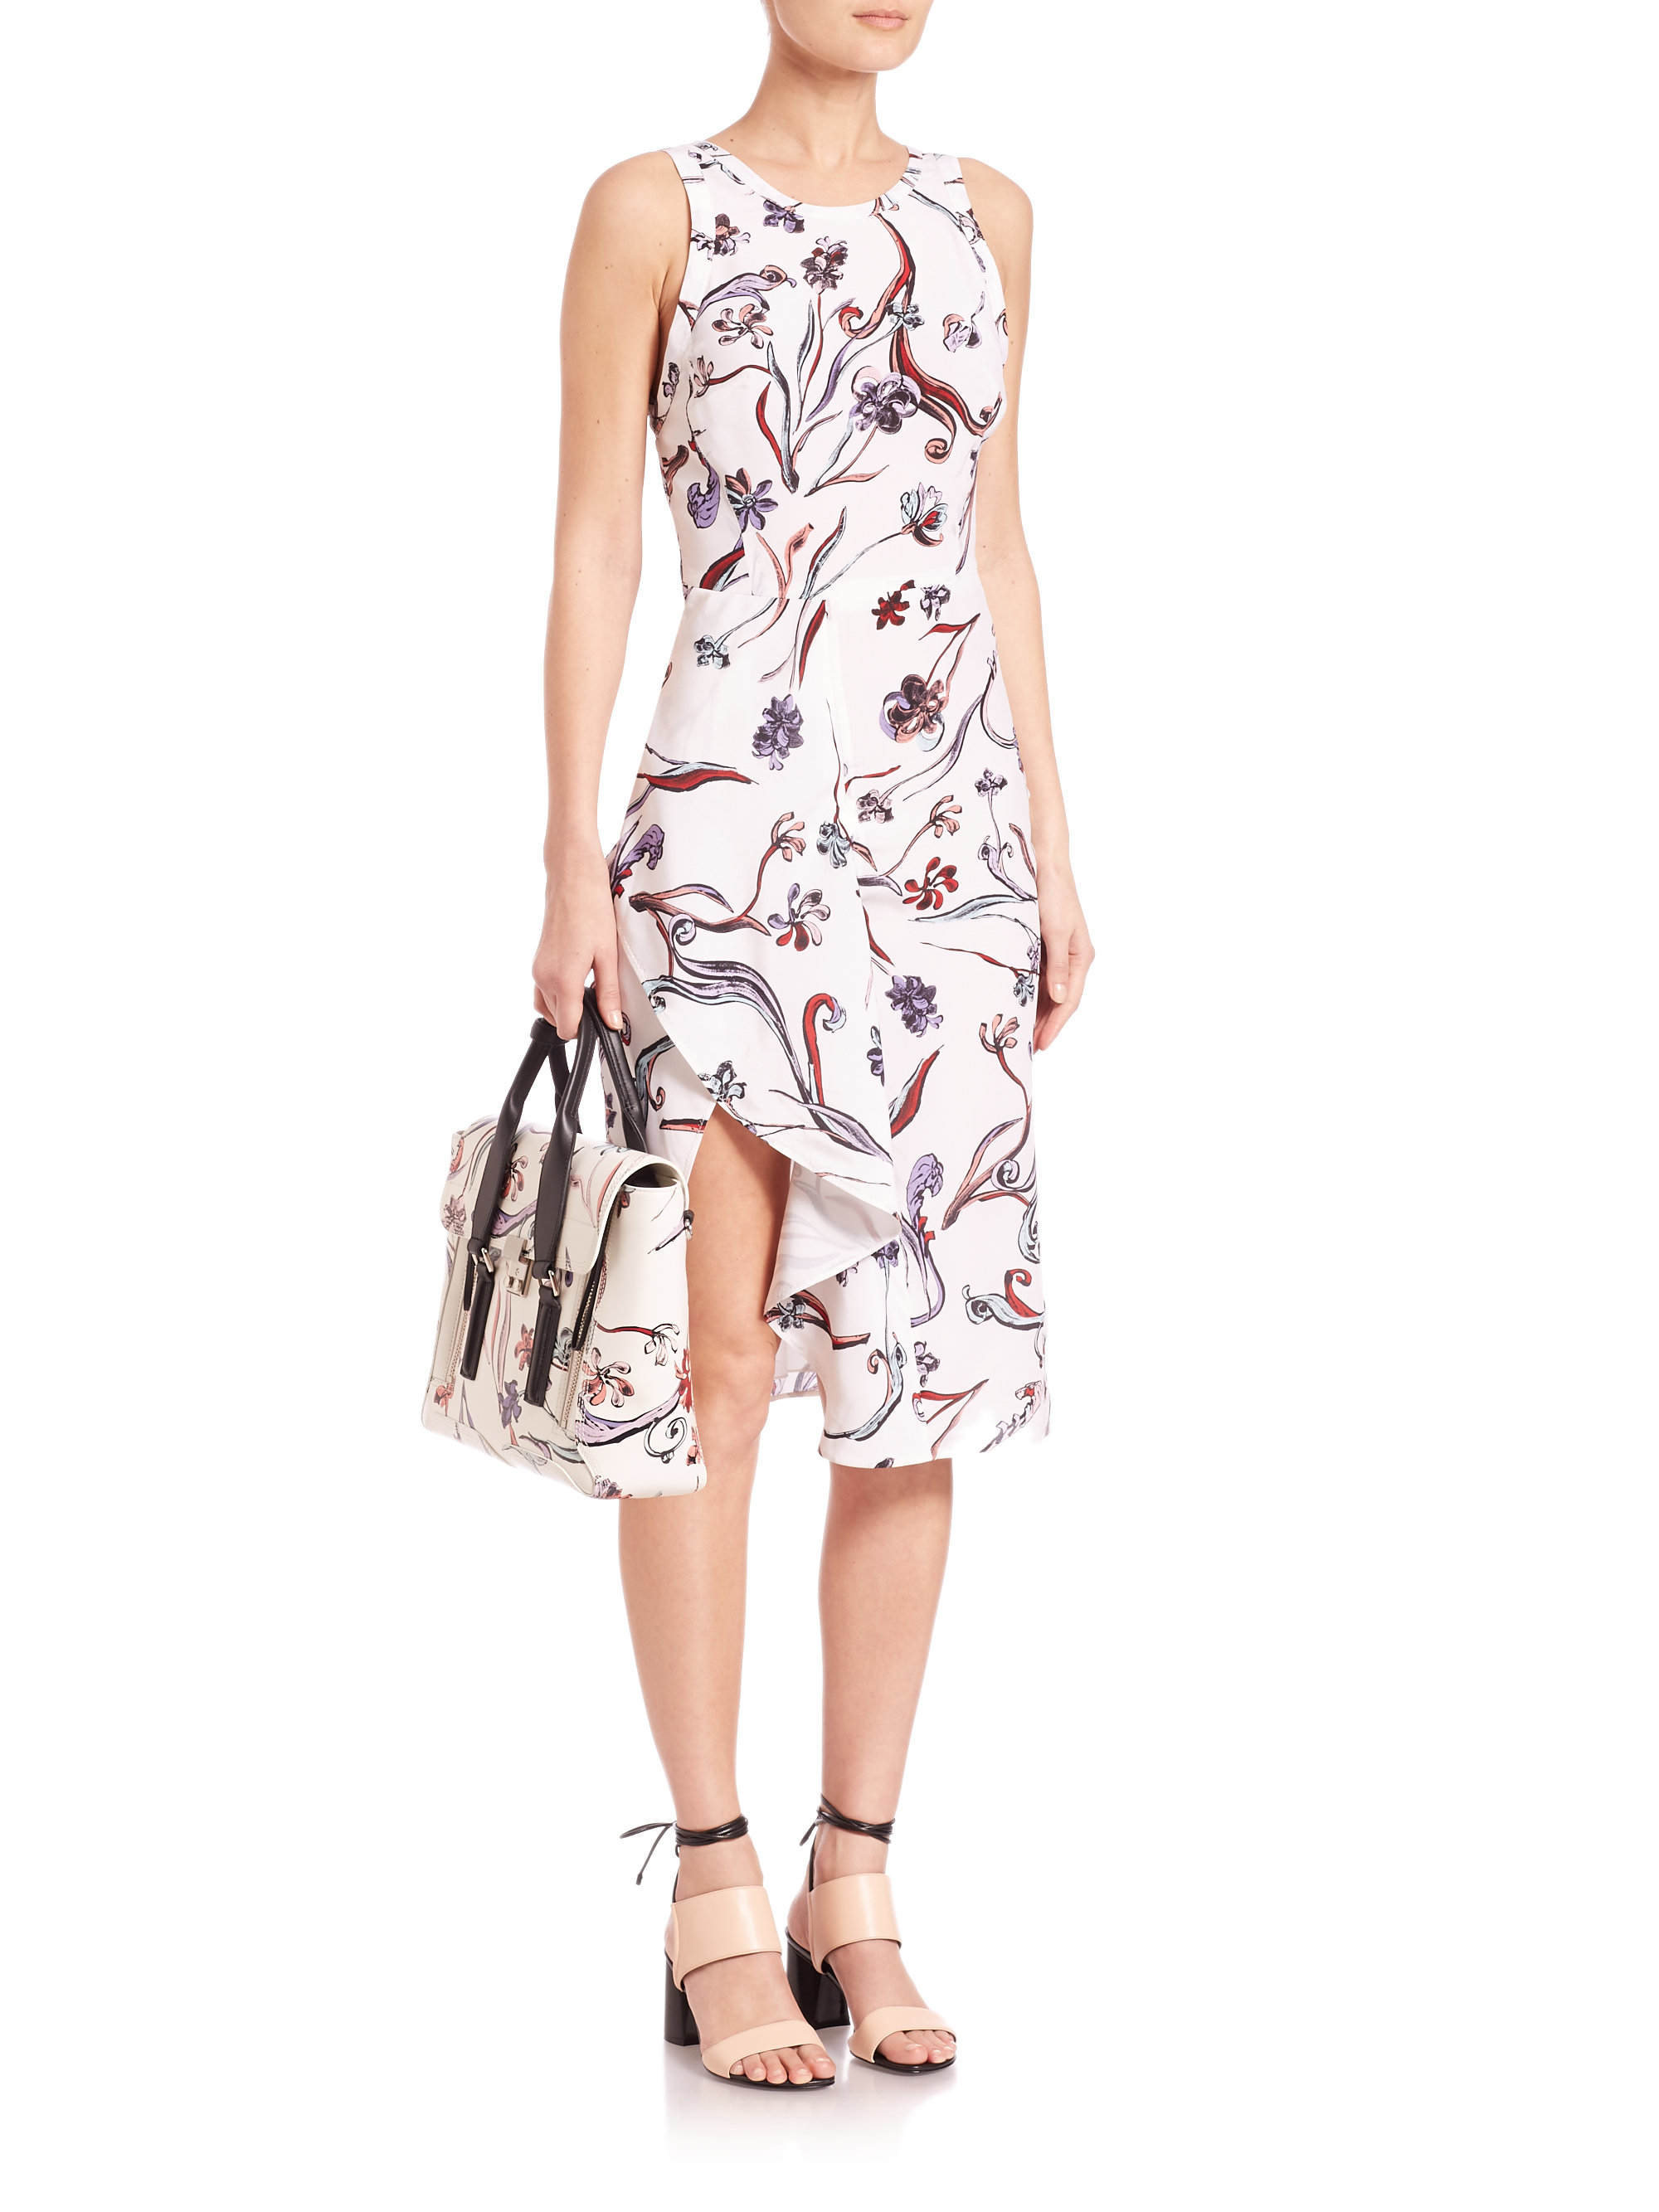 Best Seller For Sale Cheap Prices Authentic 3.1 Phillip Lim Woman Printed Mini Dress Midnight Blue Size 10 3.1 Phillip Lim Cheap Sale High Quality Find Great Online dUwmN0Ddb